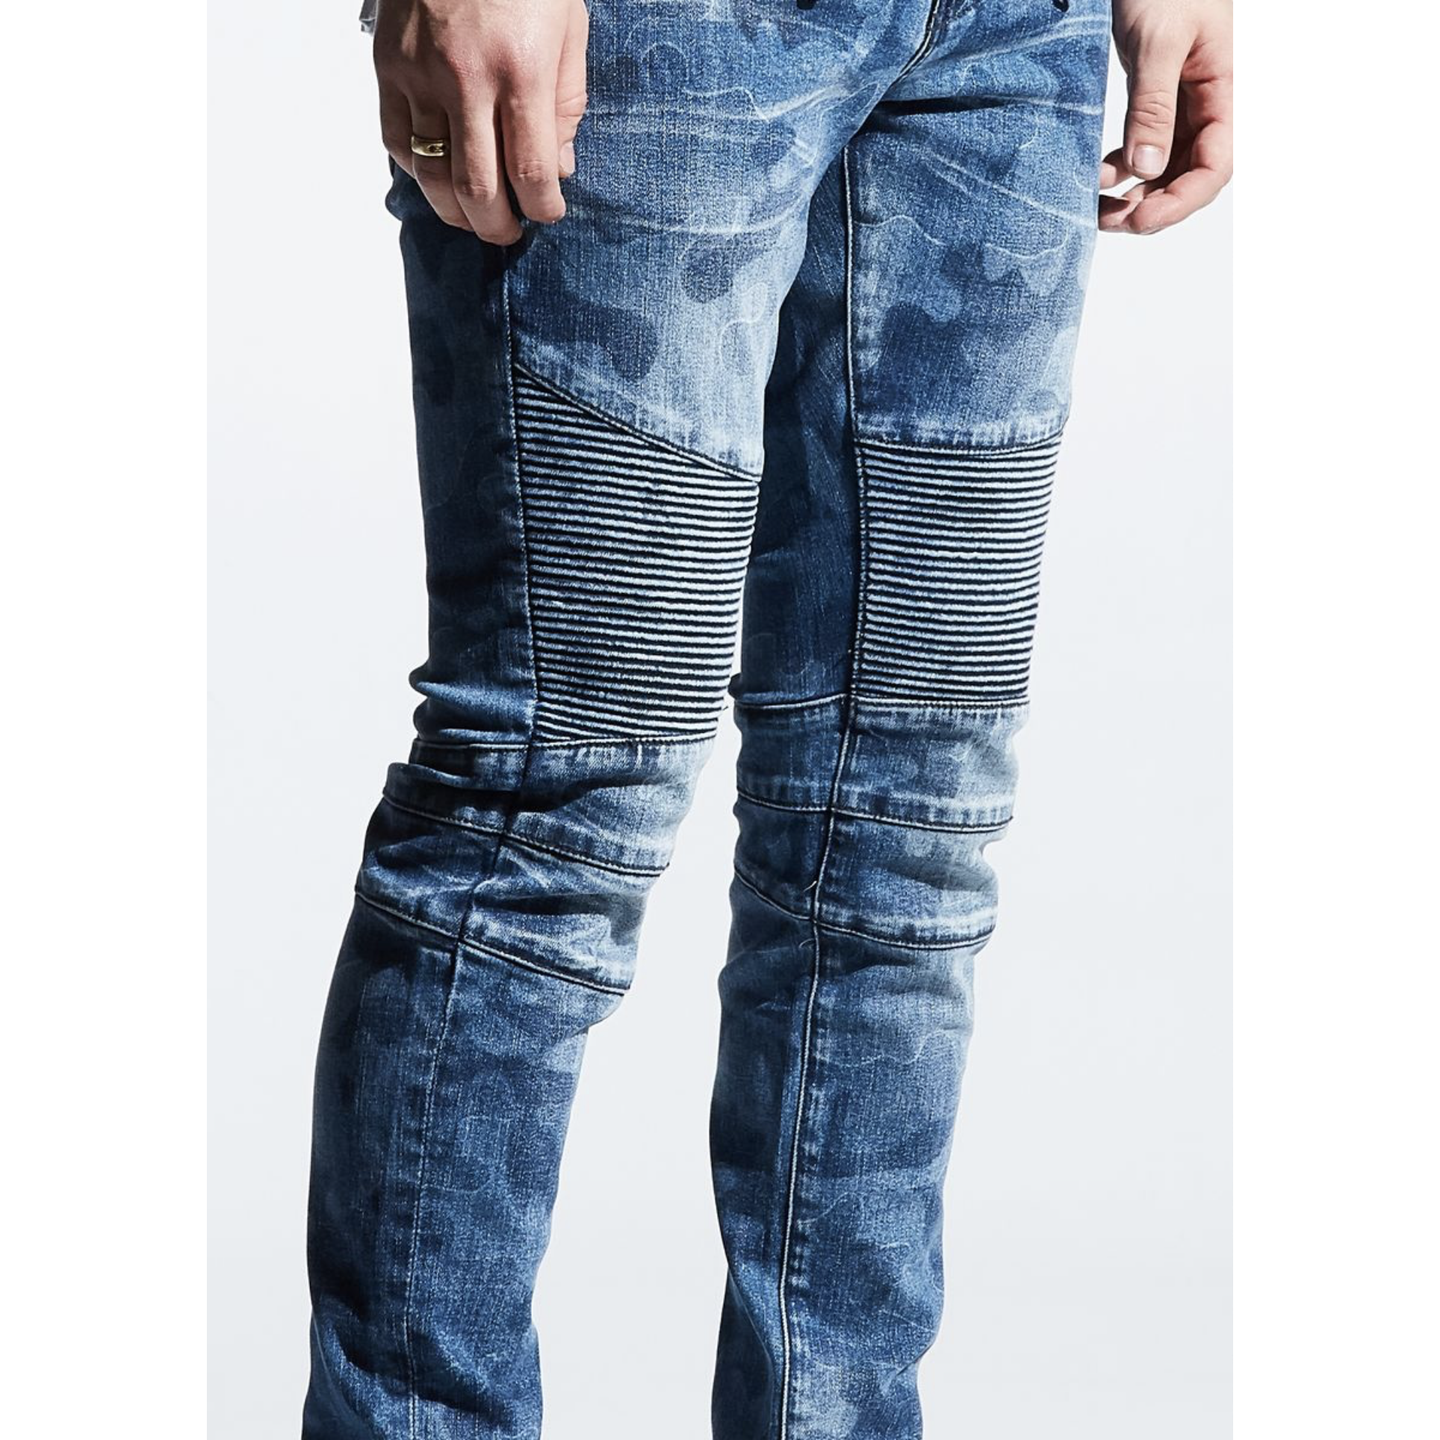 Embellish Blue Camo Mathewson Biker Denim Jeans (EMBF219-119)